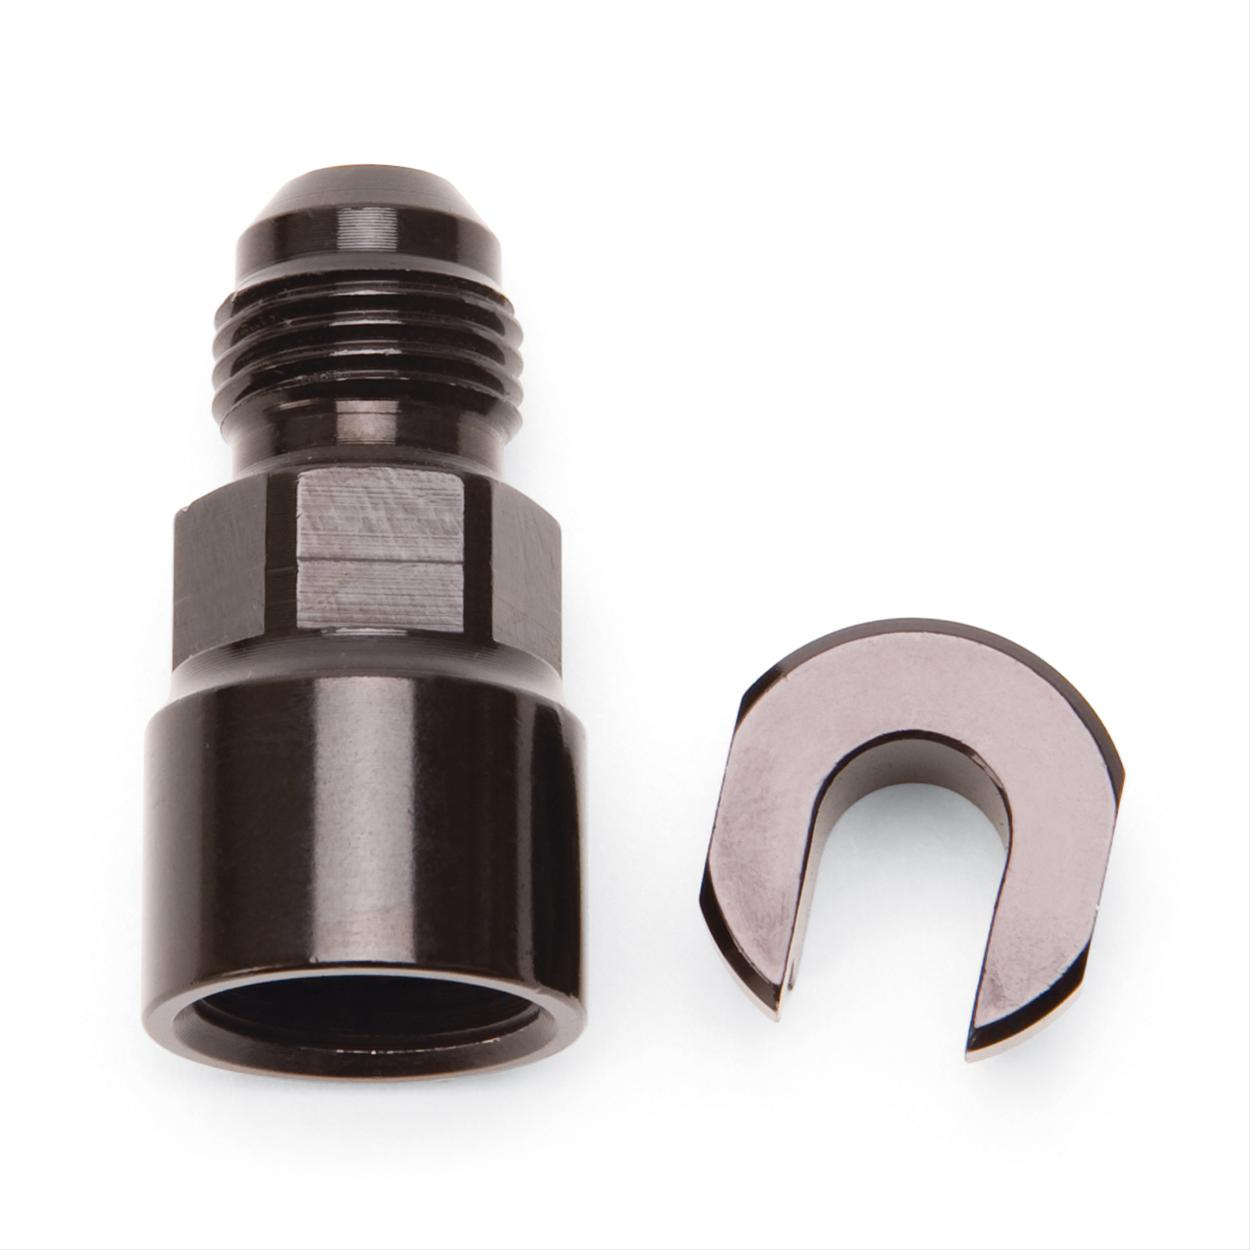 Russell 644113 Fuel Adapter Fitting